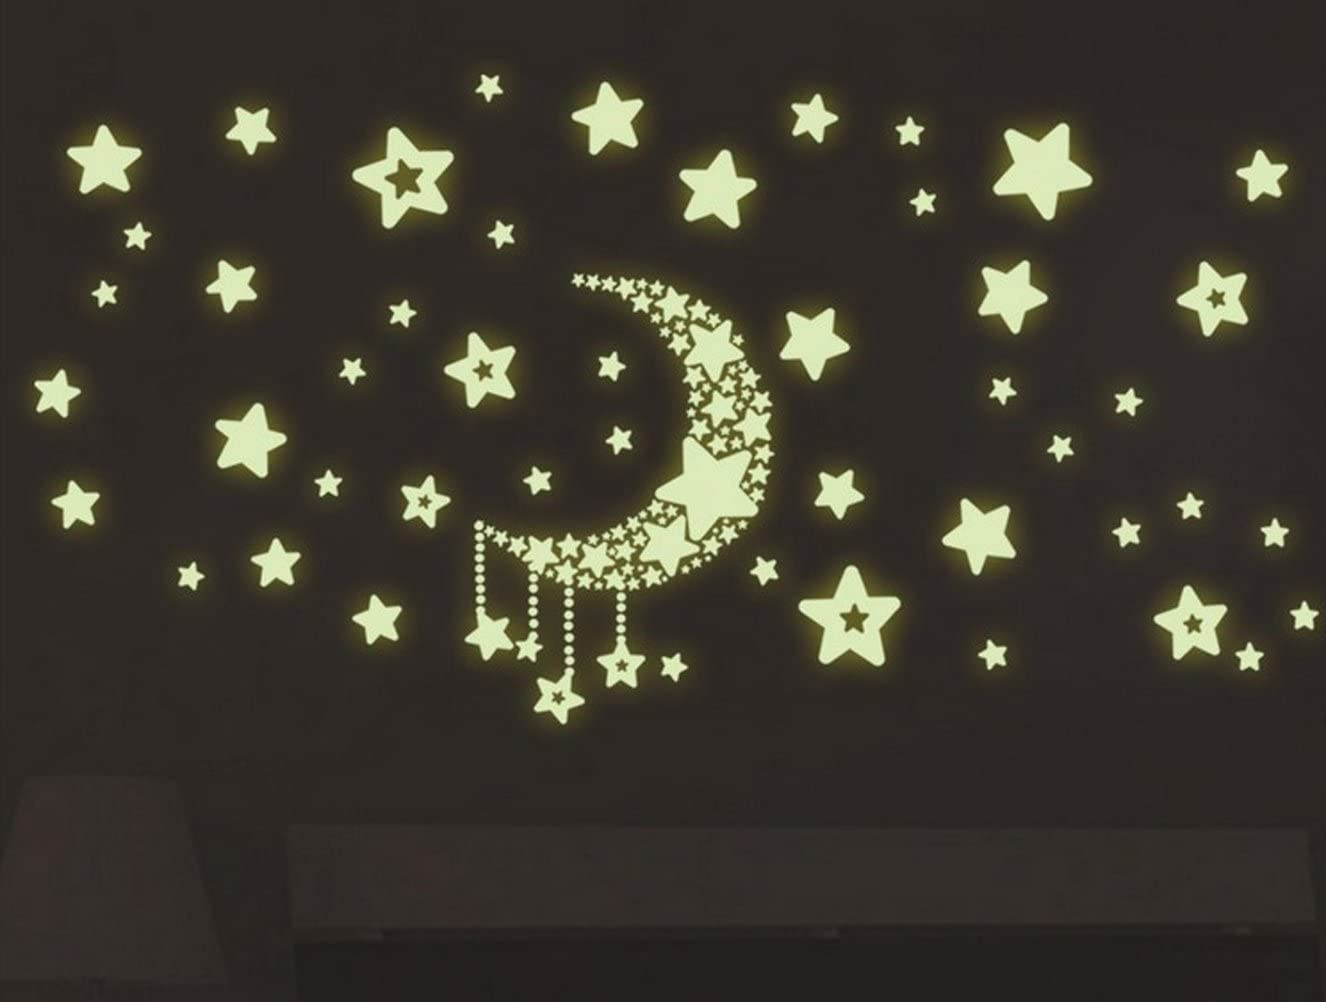 Amazon Com Wonder Stars Fluorescent Dot Glow In The Dark Stickers Wall Decals Home Art Decor Decal Vinyl Removable Radium Night Glow Wall Decals Glow Night Star Sticker Mural Art Wallpaper 20x25cm 8inchx9inch Home